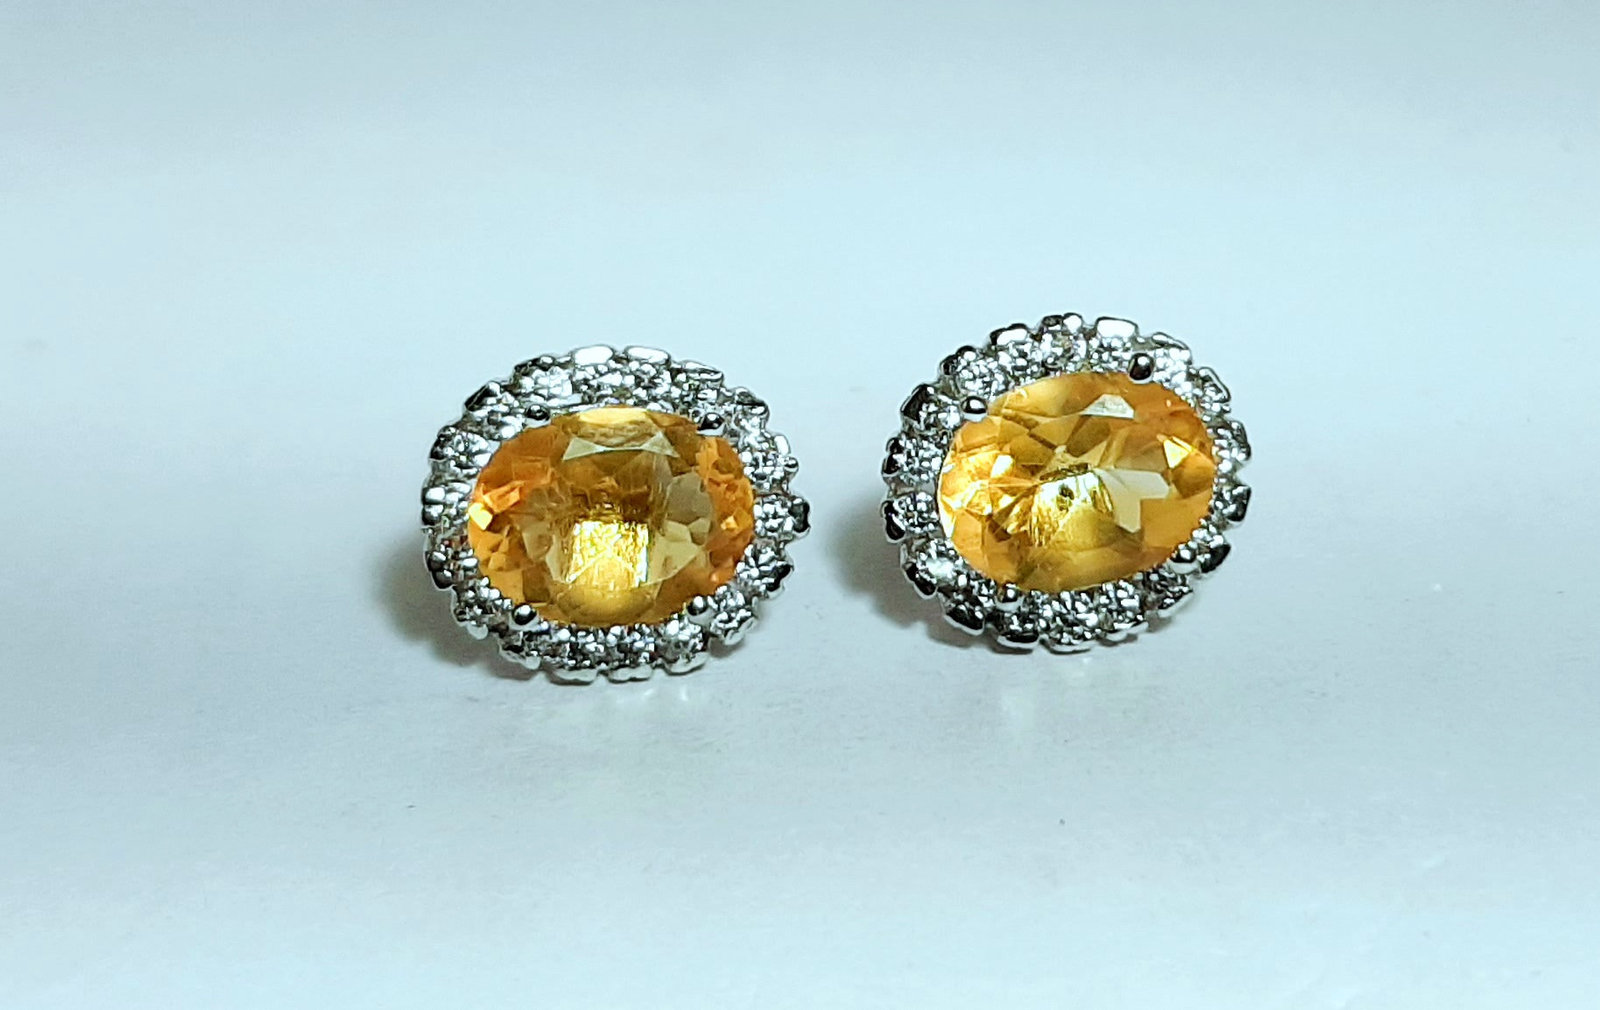 925 Sterling Silver Natural A+ Quality Citrine And Cz Gemstone Handcrafted Desig